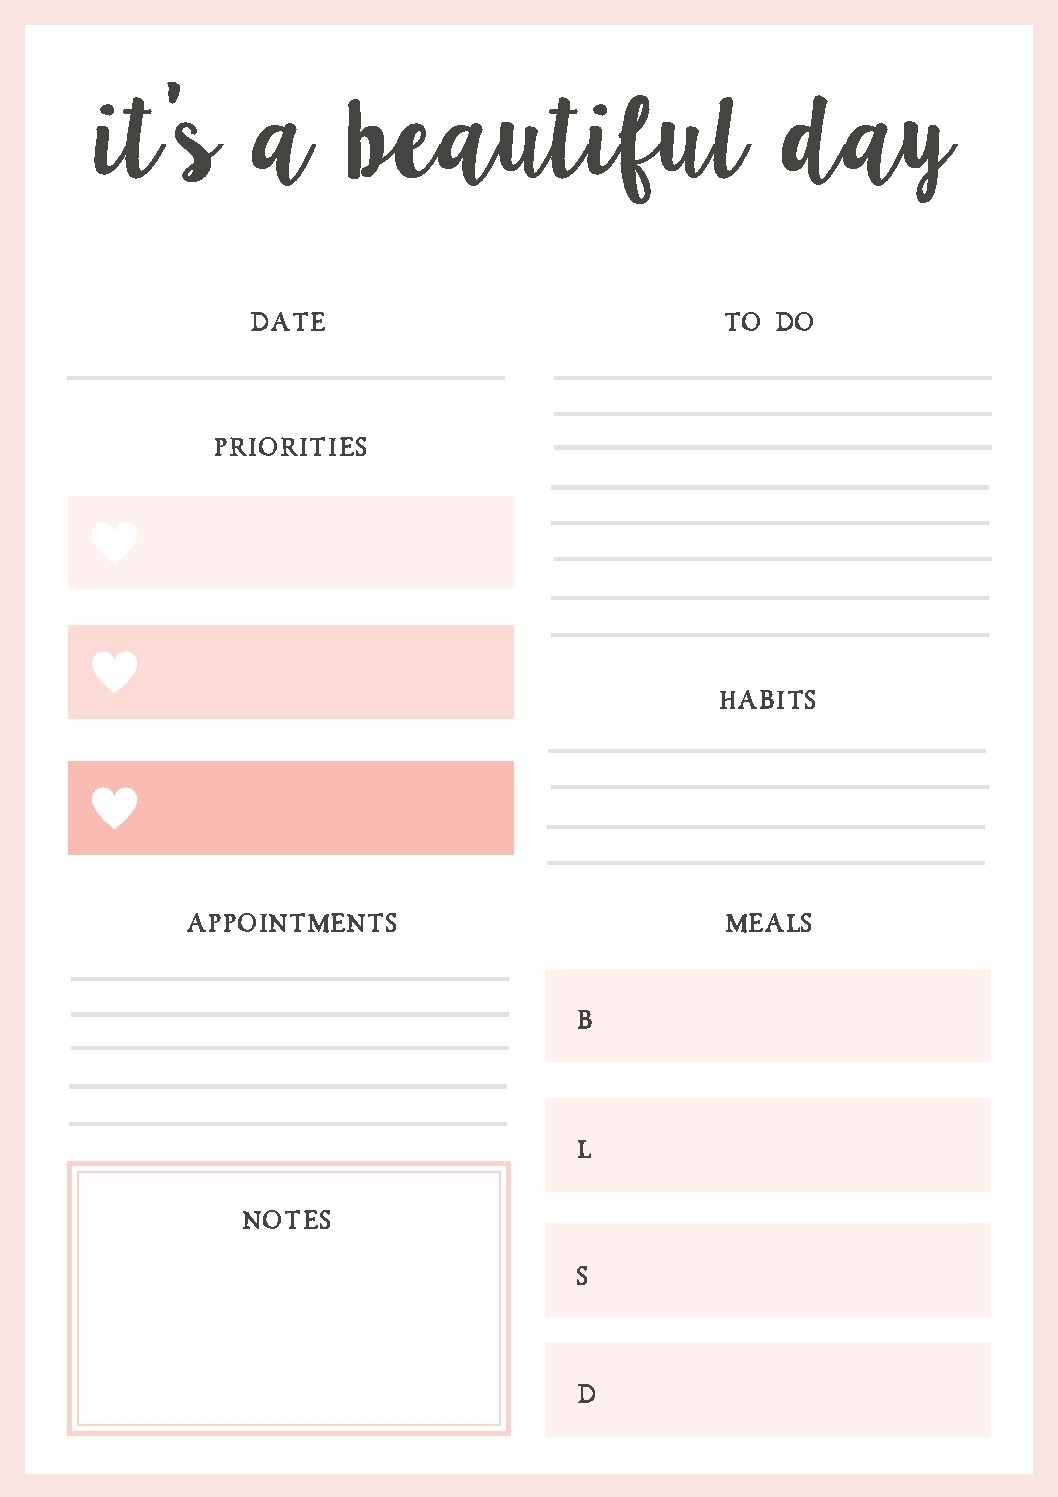 018 Daily Planner Template Printable Personal Pdf Fantastic Ideas in Daily Planner Template Printable Free